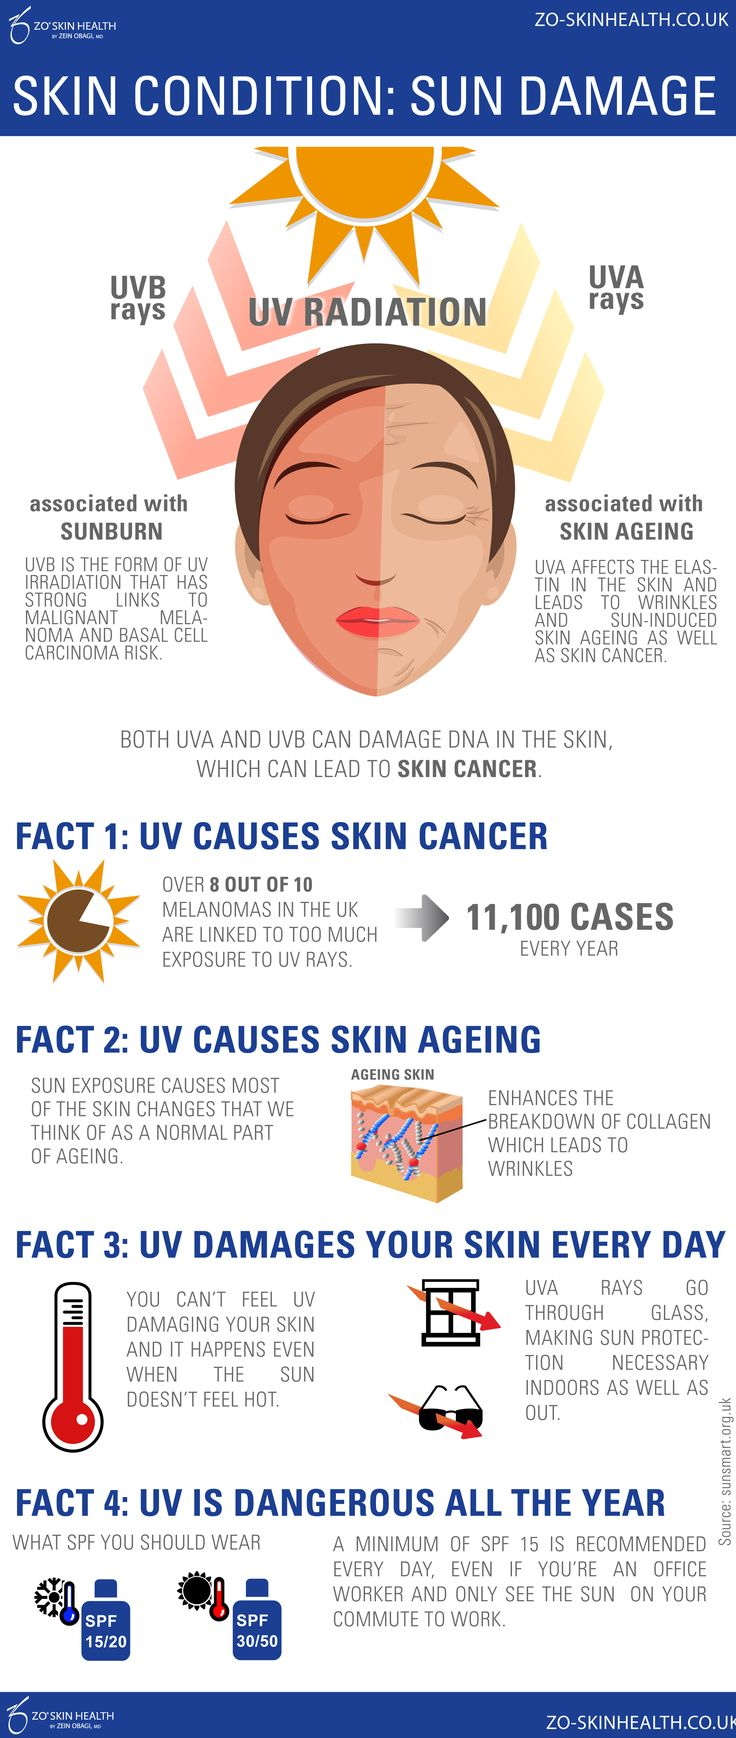 How UVA & UVB sun rays are damaging your skin